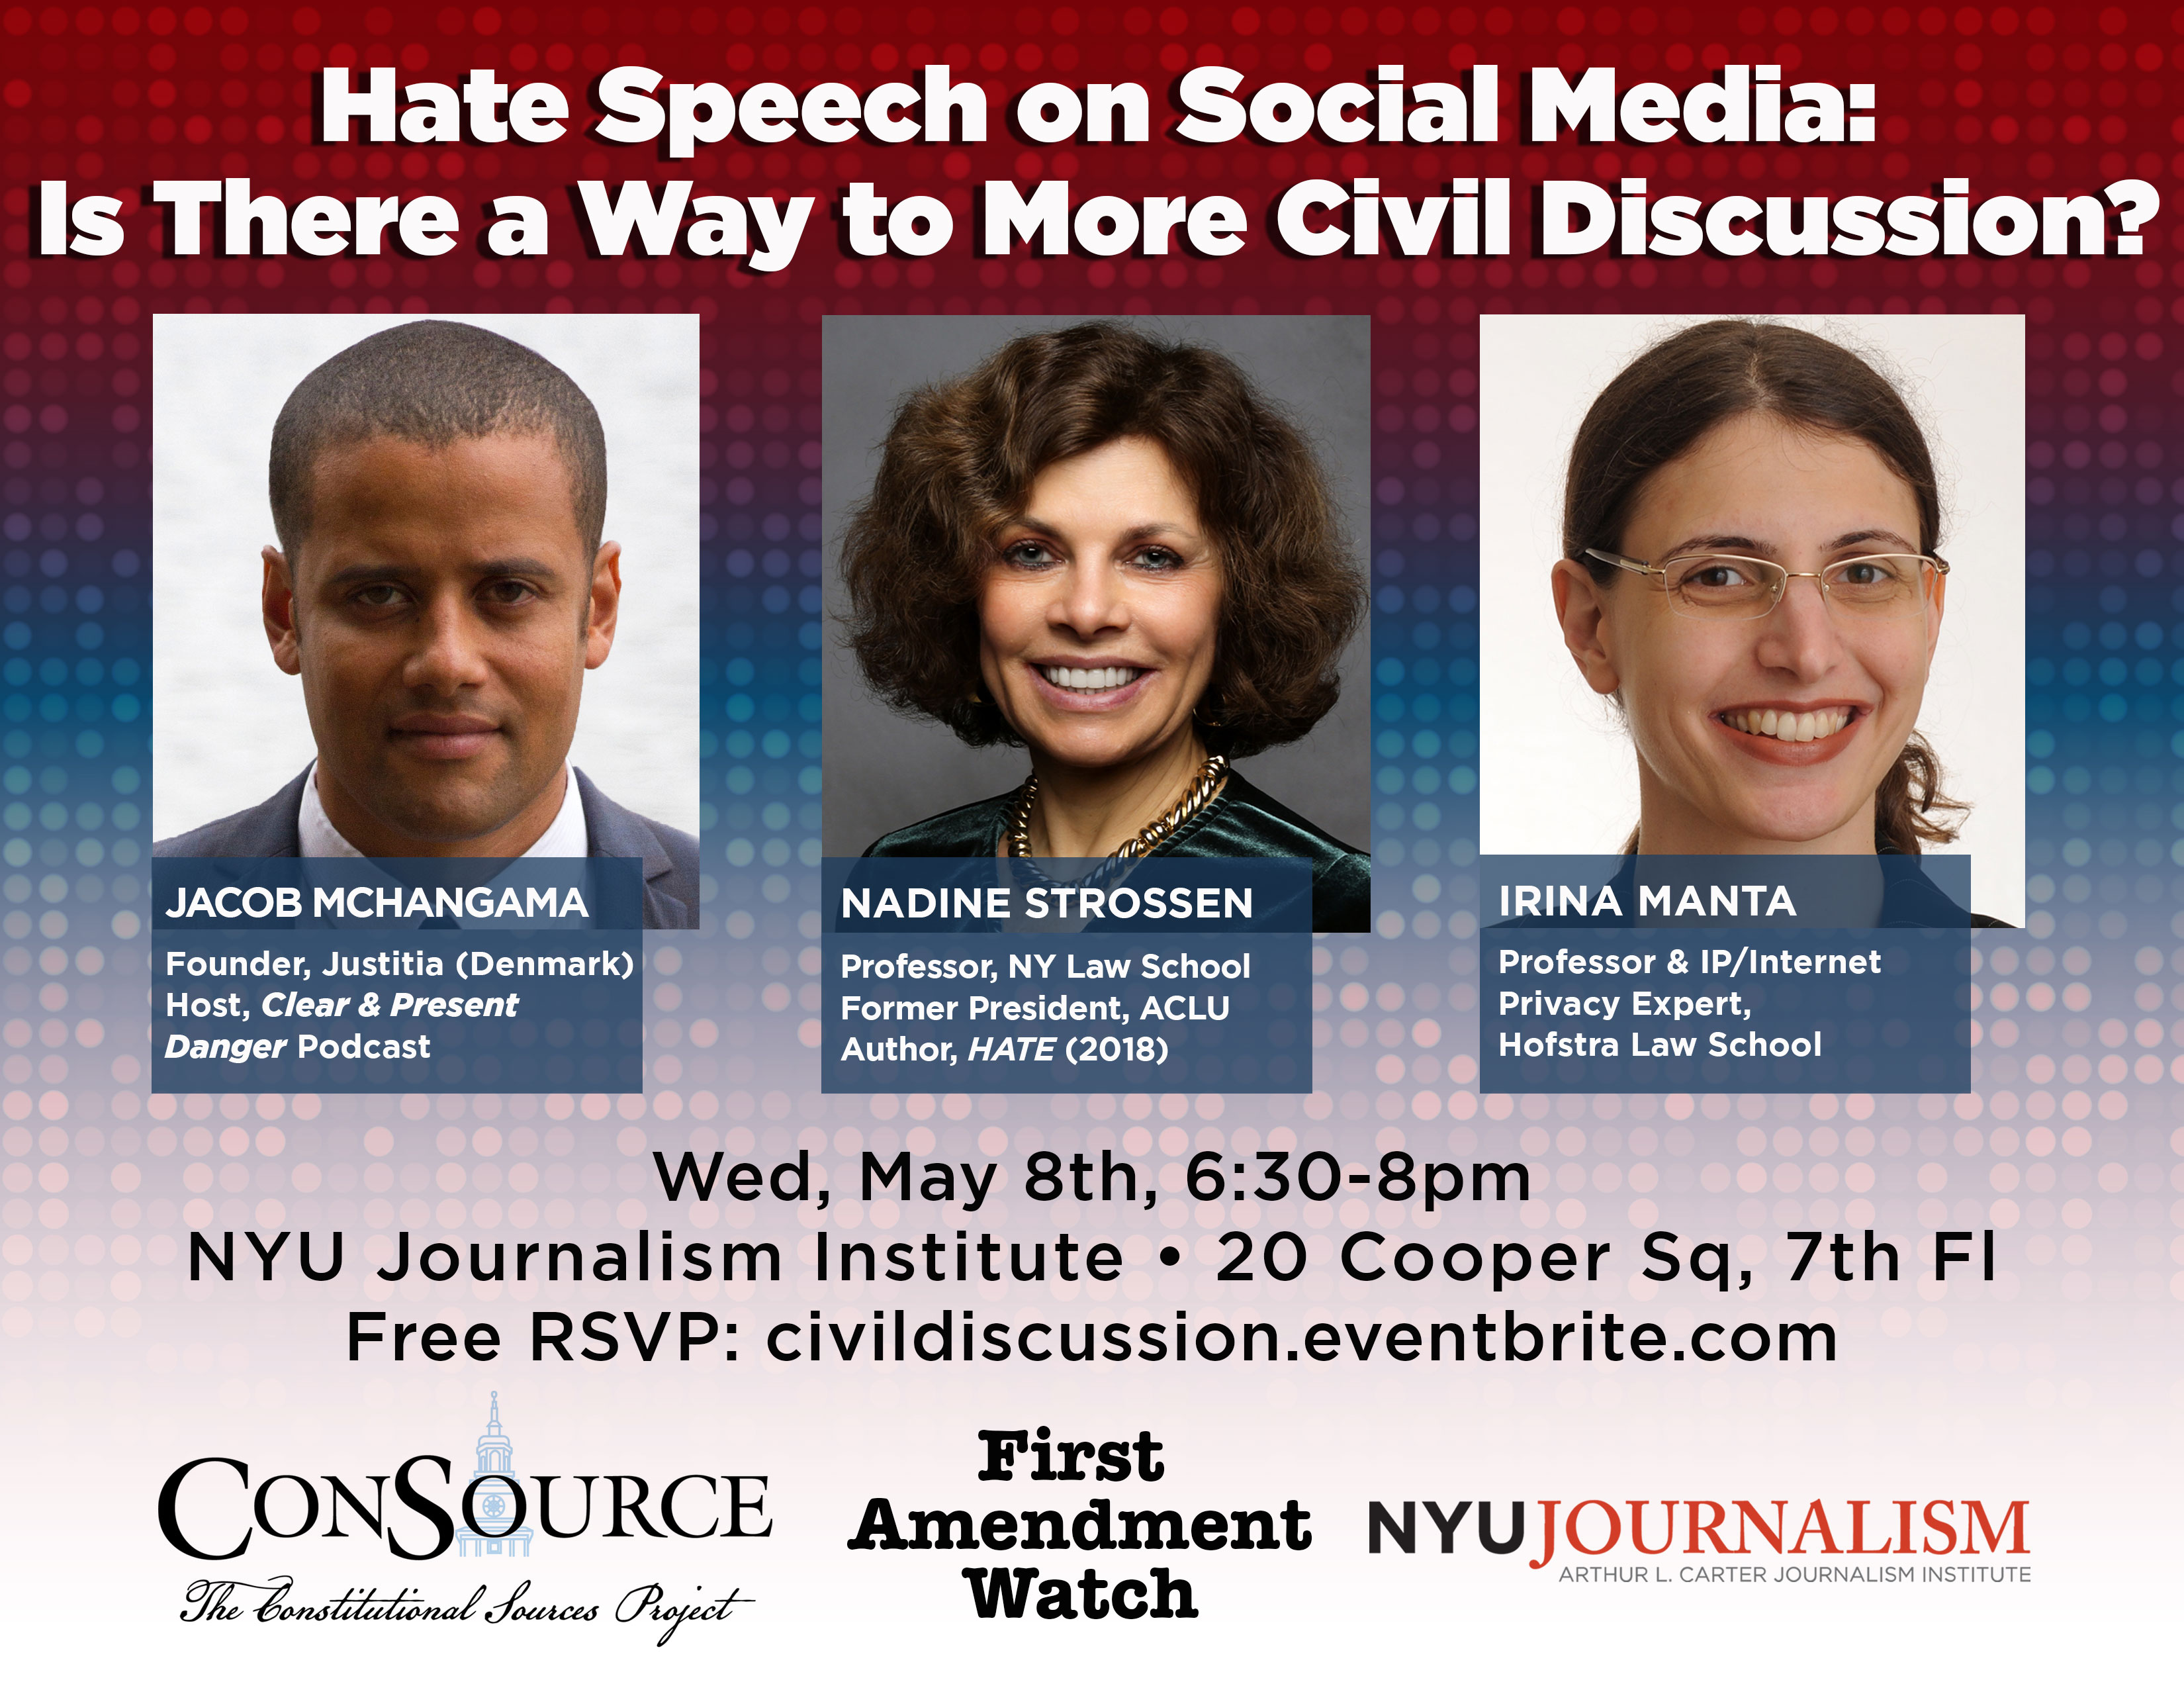 Hate Speech on Social Media: Is There a Way to More Civil Discussion?